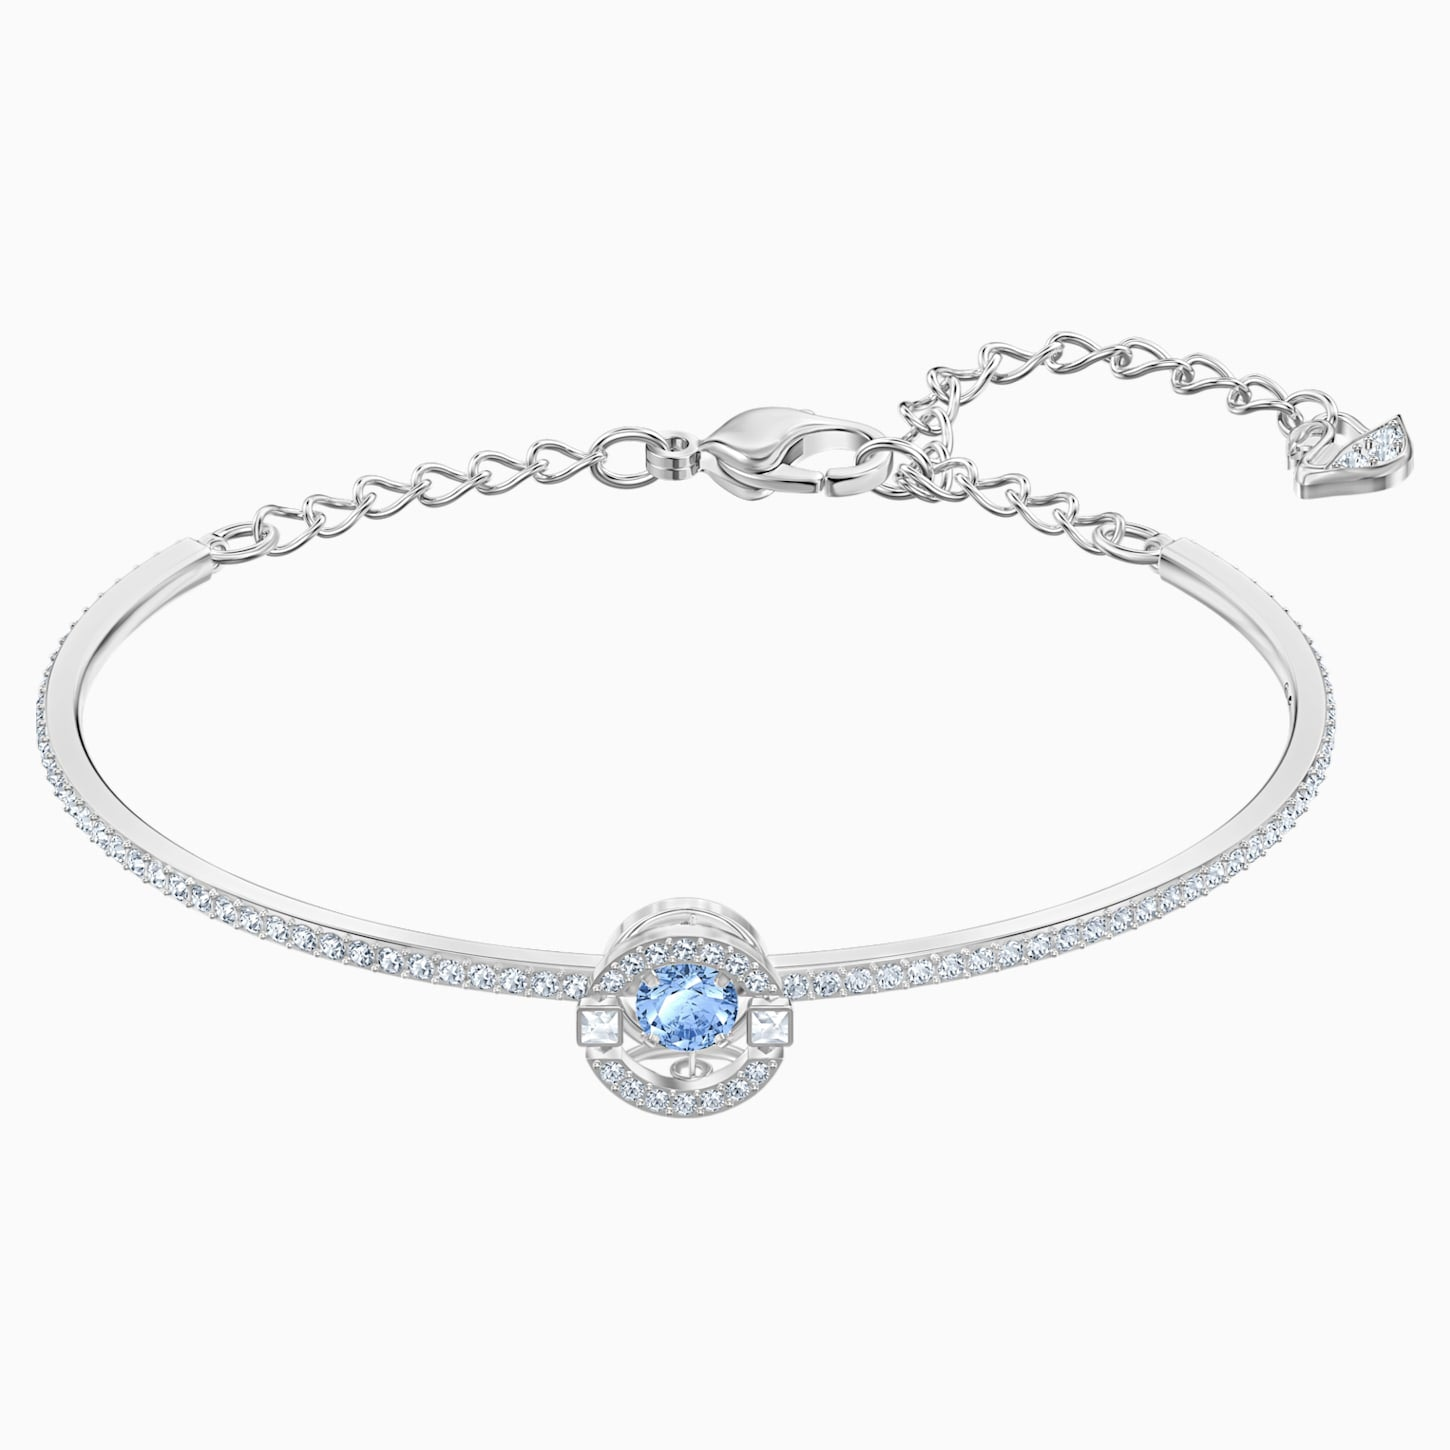 SWAROVSKI SPARKLING DANCE BANGLE, BLUE, RHODIUM PLATED [ FREE SHIPPING ]